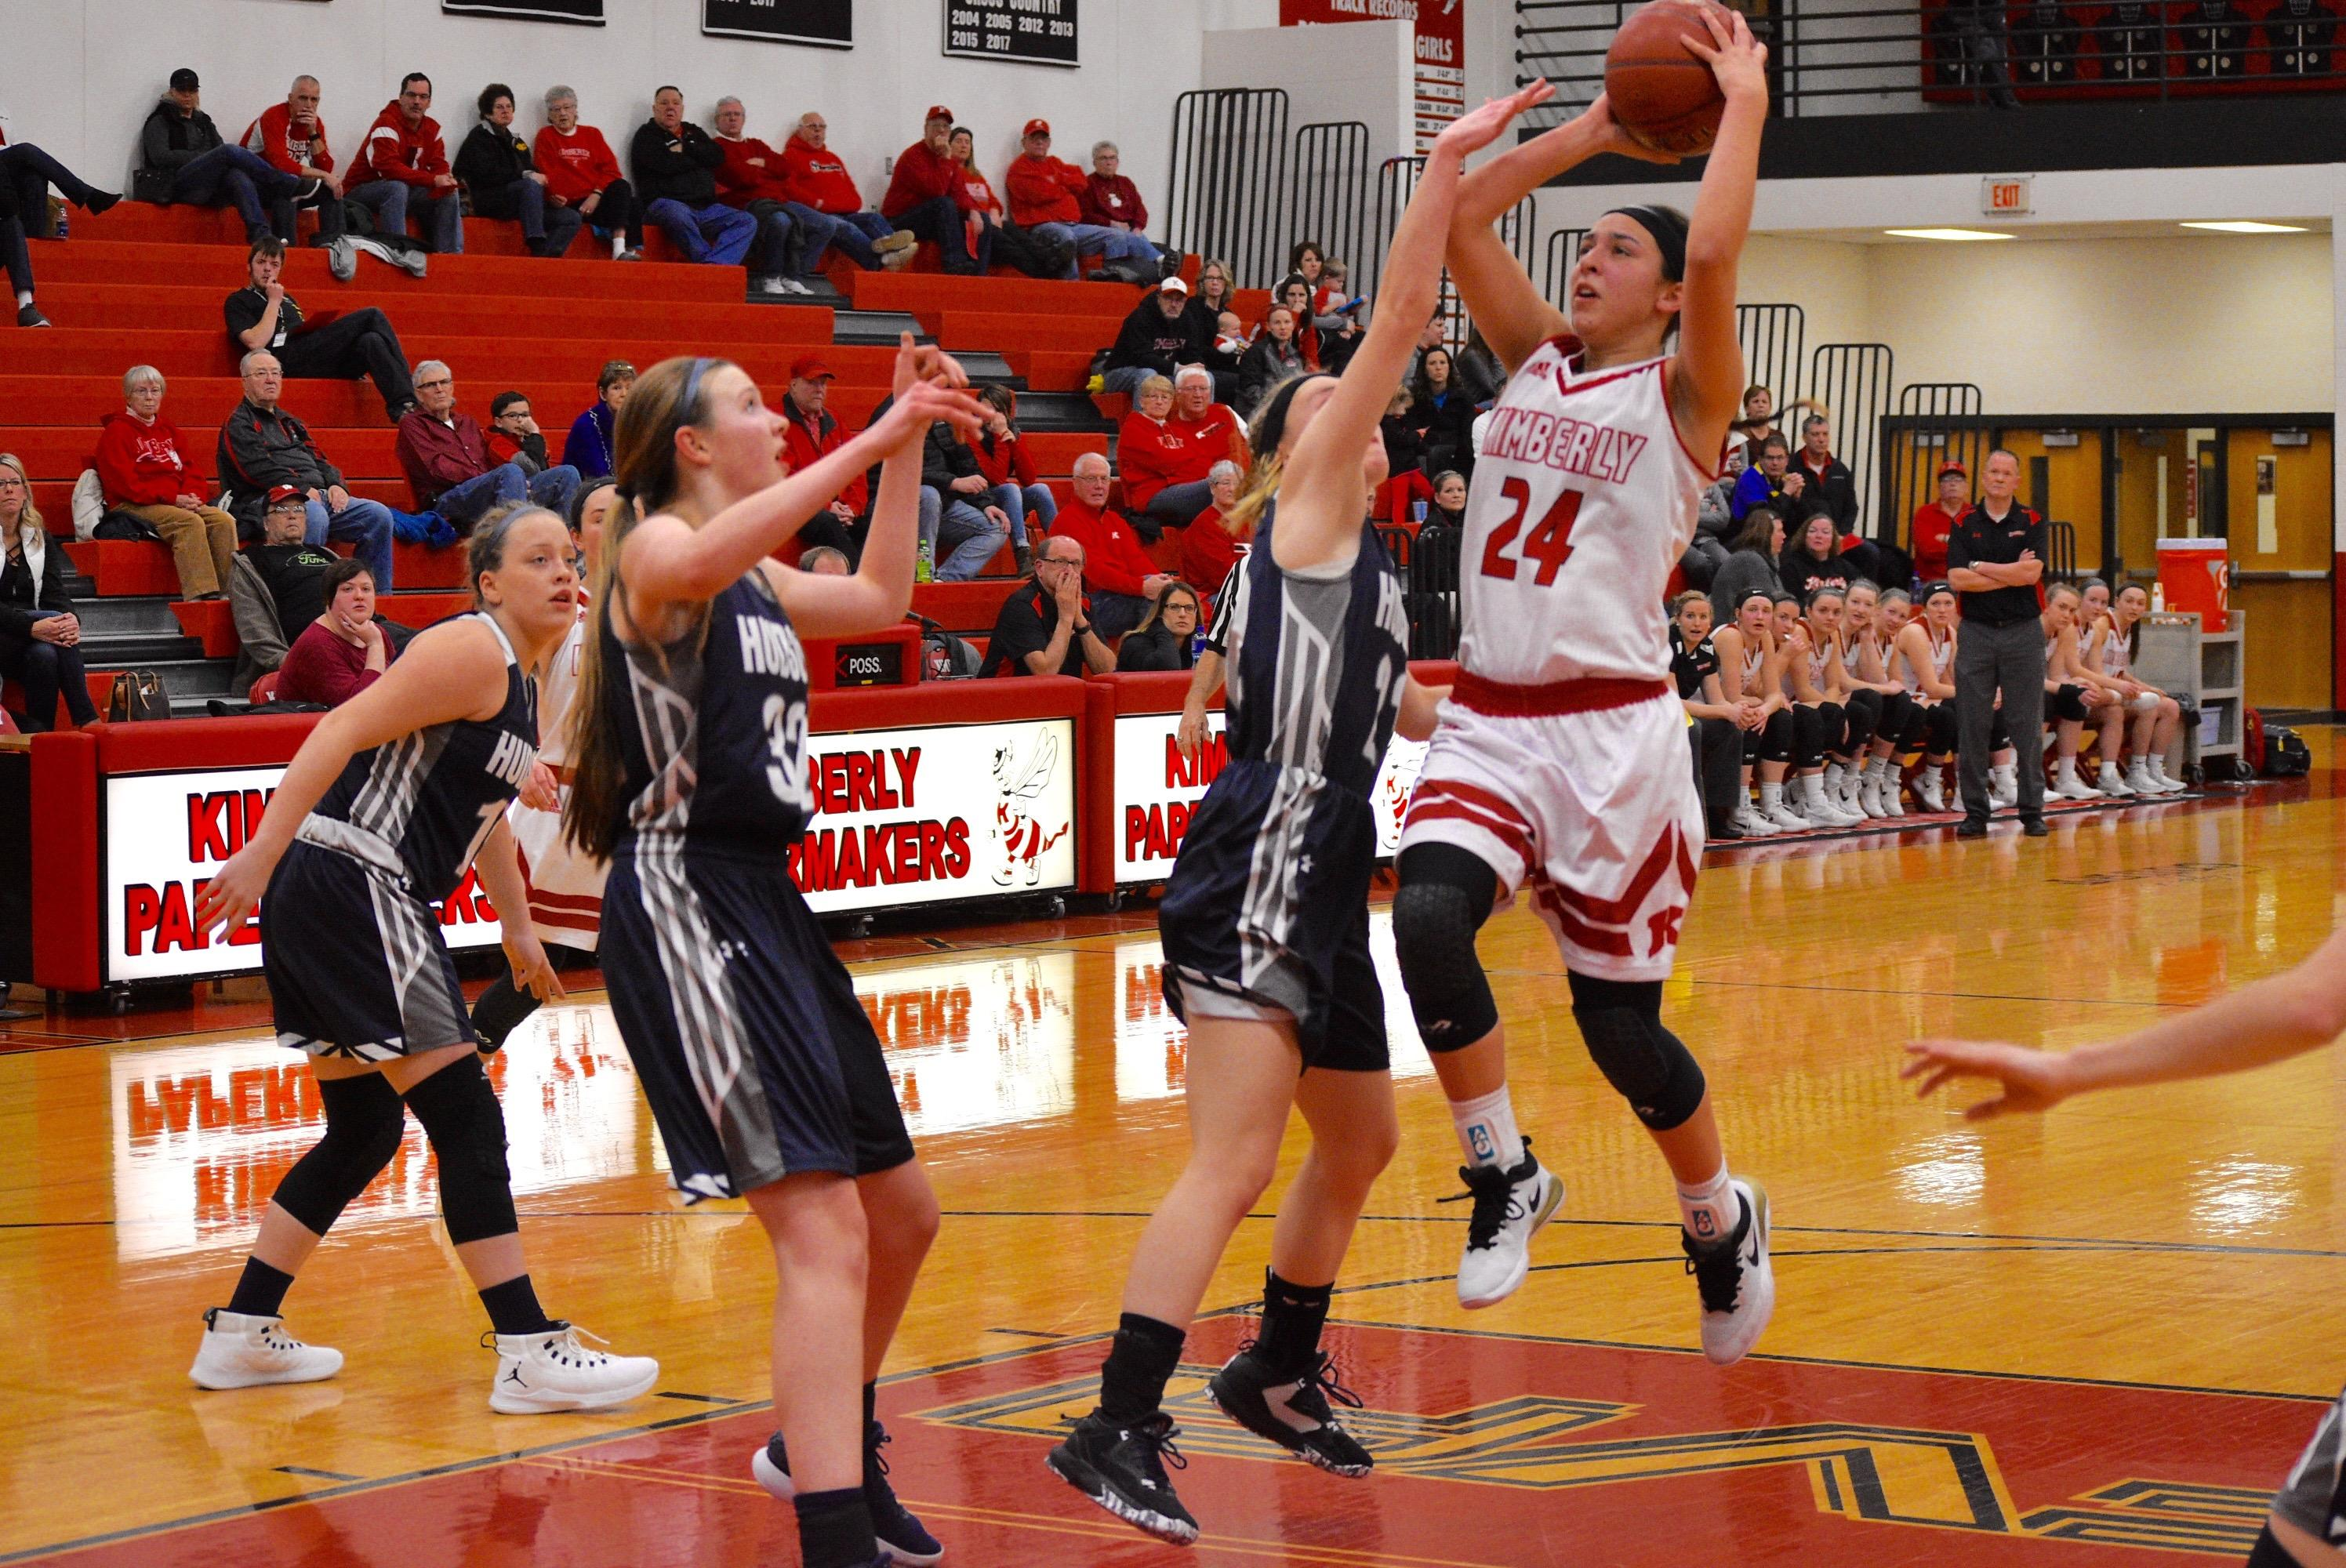 Kimberly defeated Hudson, 57-43, to win a Division 1 regional title on Monday. (Doug Ritchay/WLUK)<p></p>